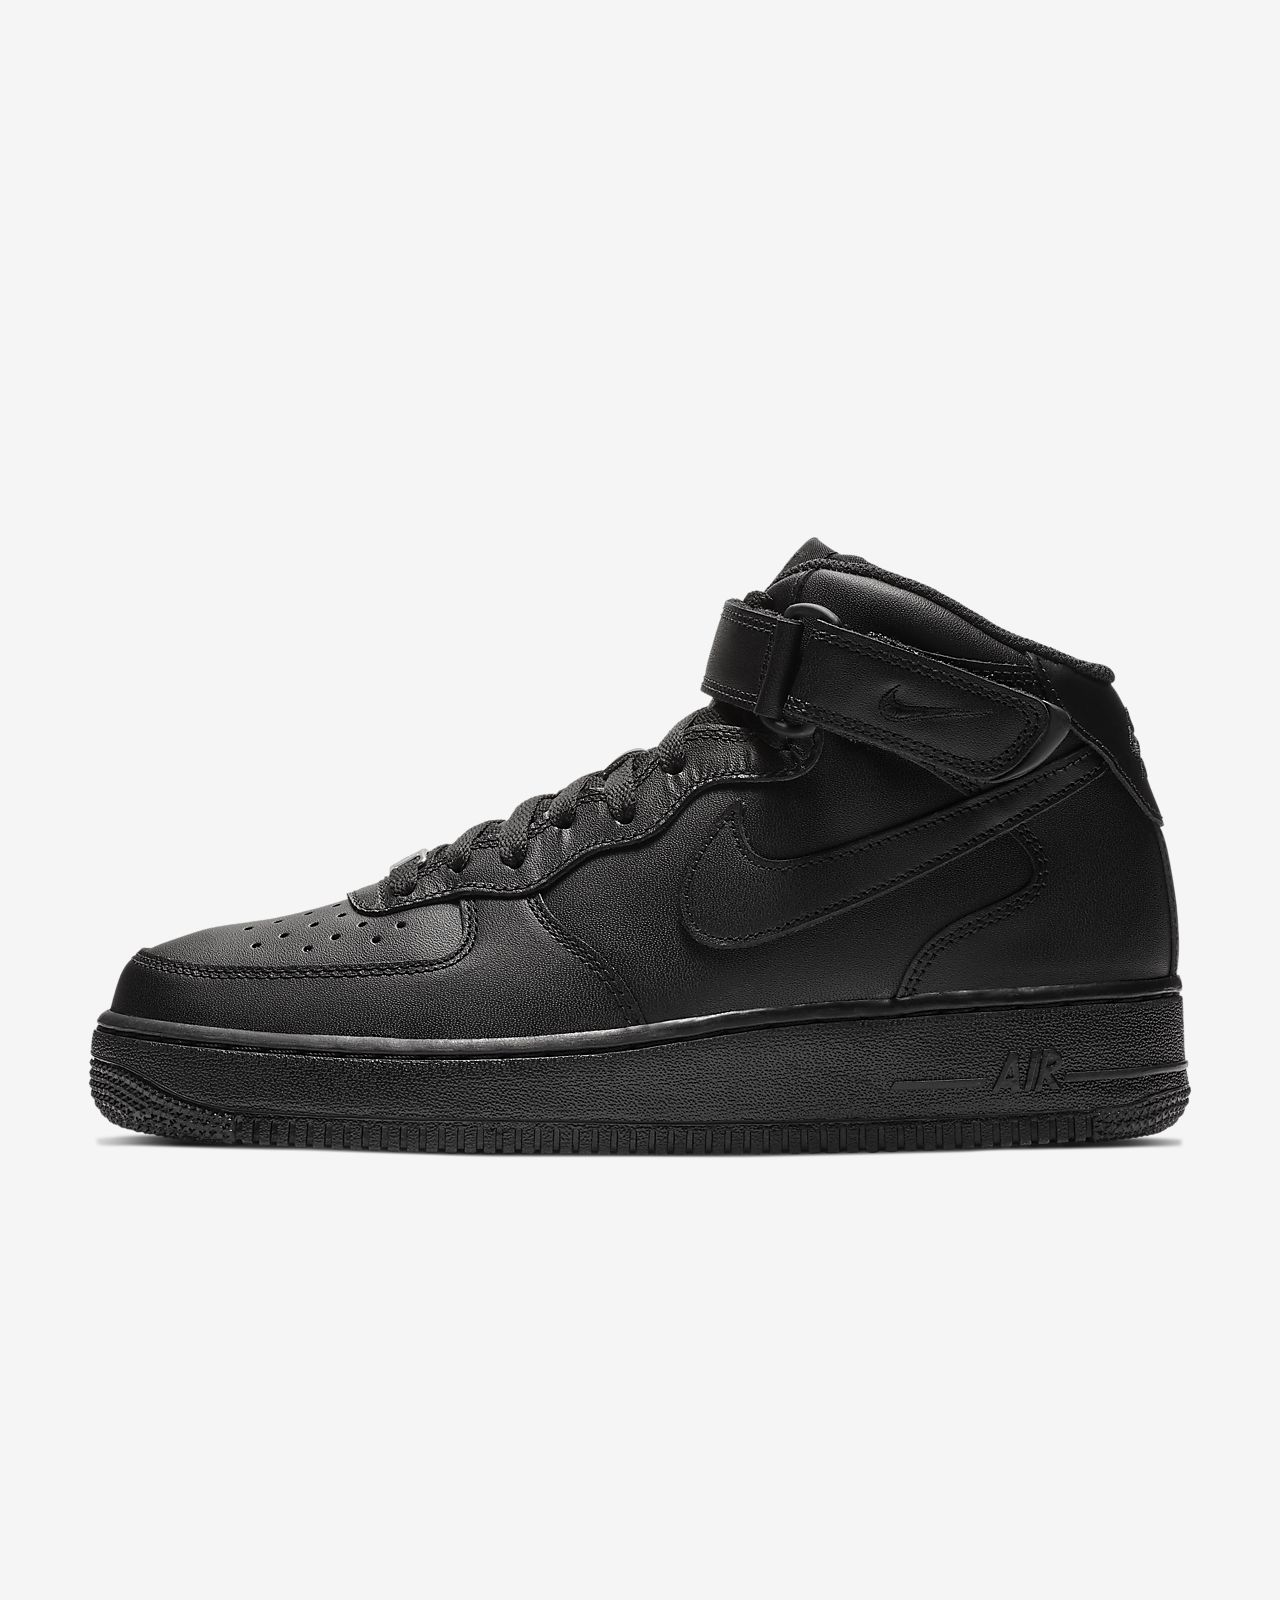 Nike Air Force 1 Mid 315123 111 Sneakers Alte Uomo Donna